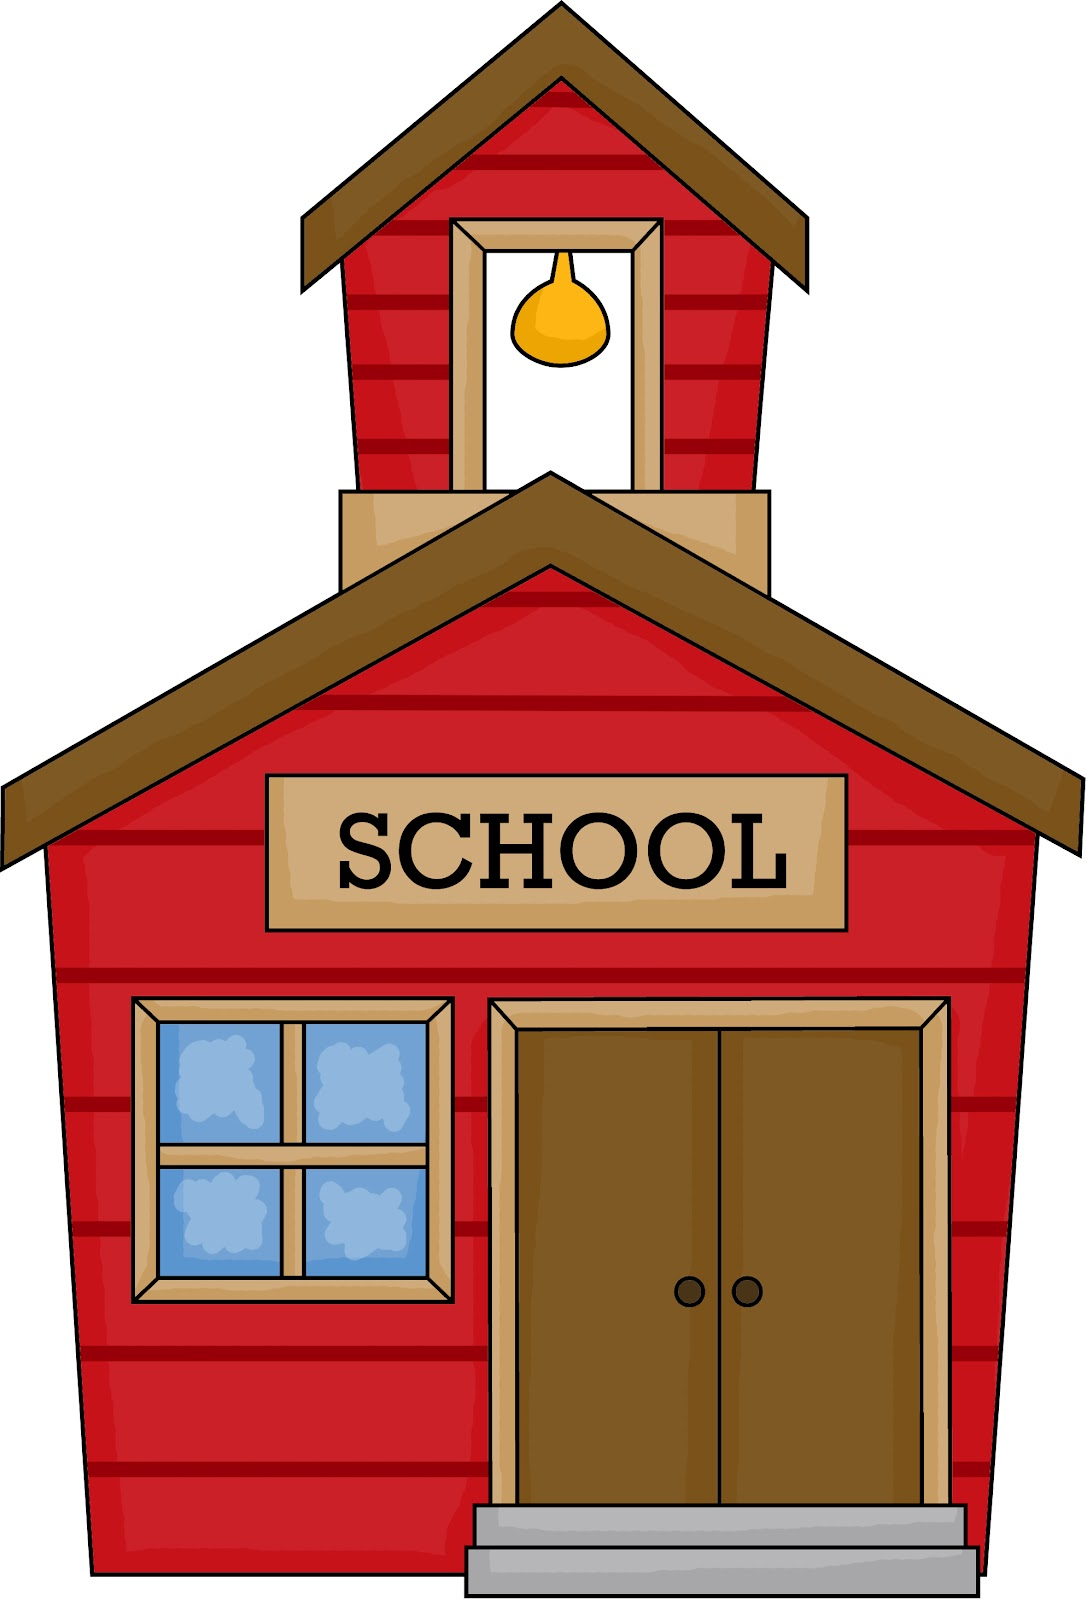 School House Graphics - ClipArt - 154.2KB